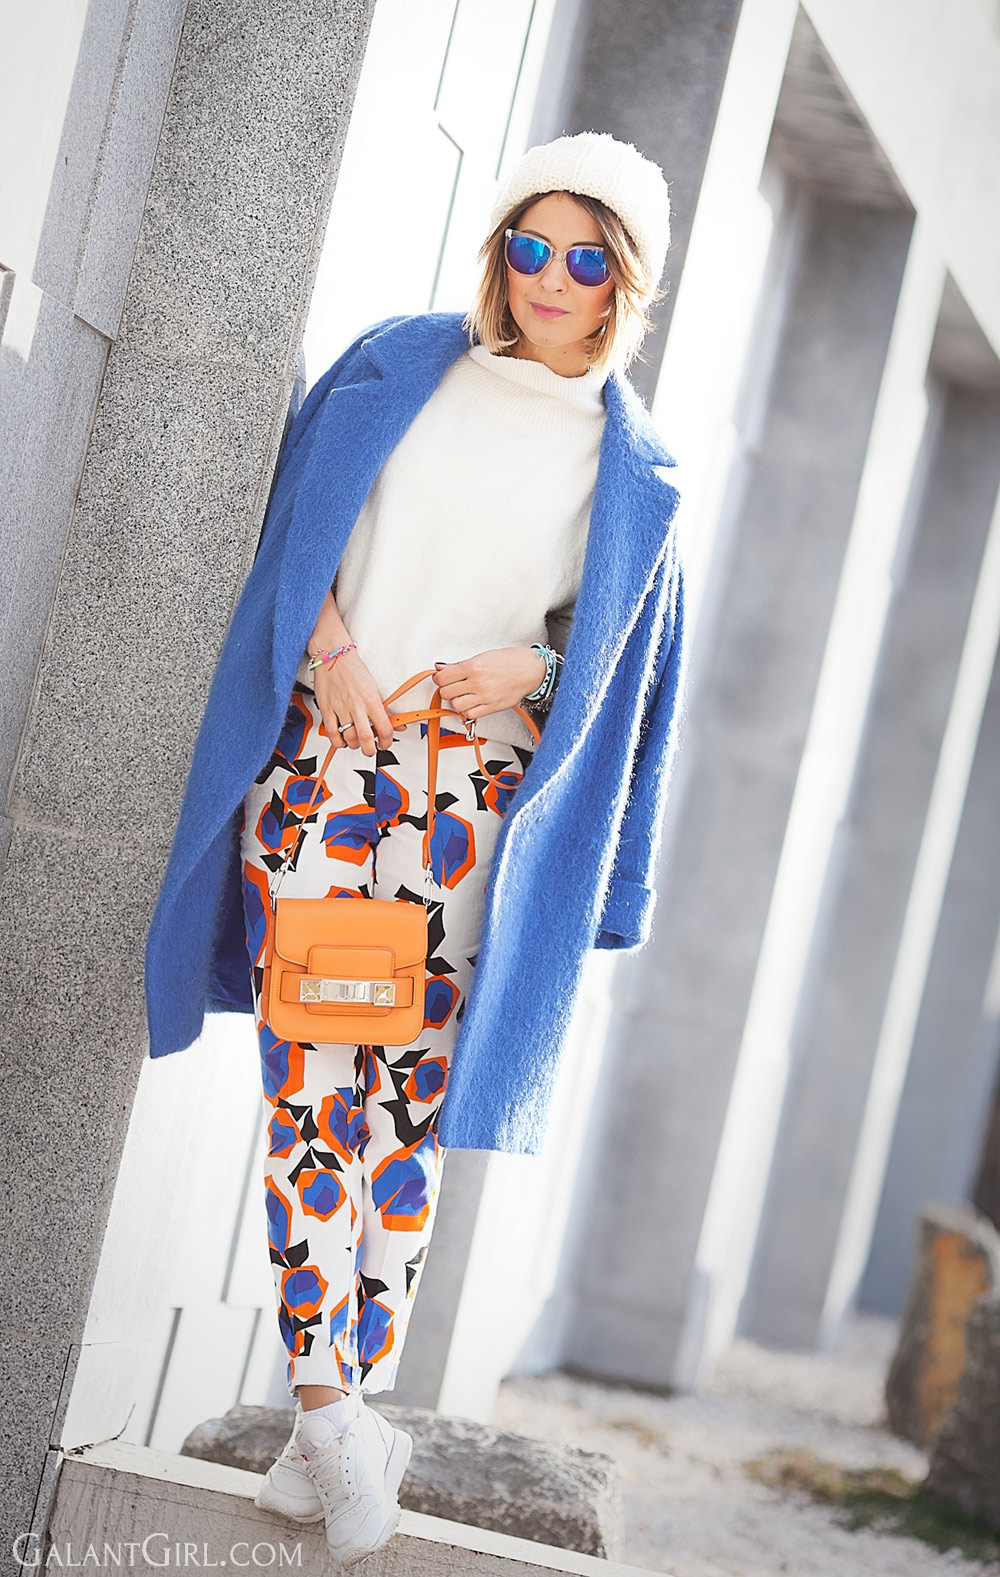 cropped-trousers-and-blue-coat-for-cold-winter-days